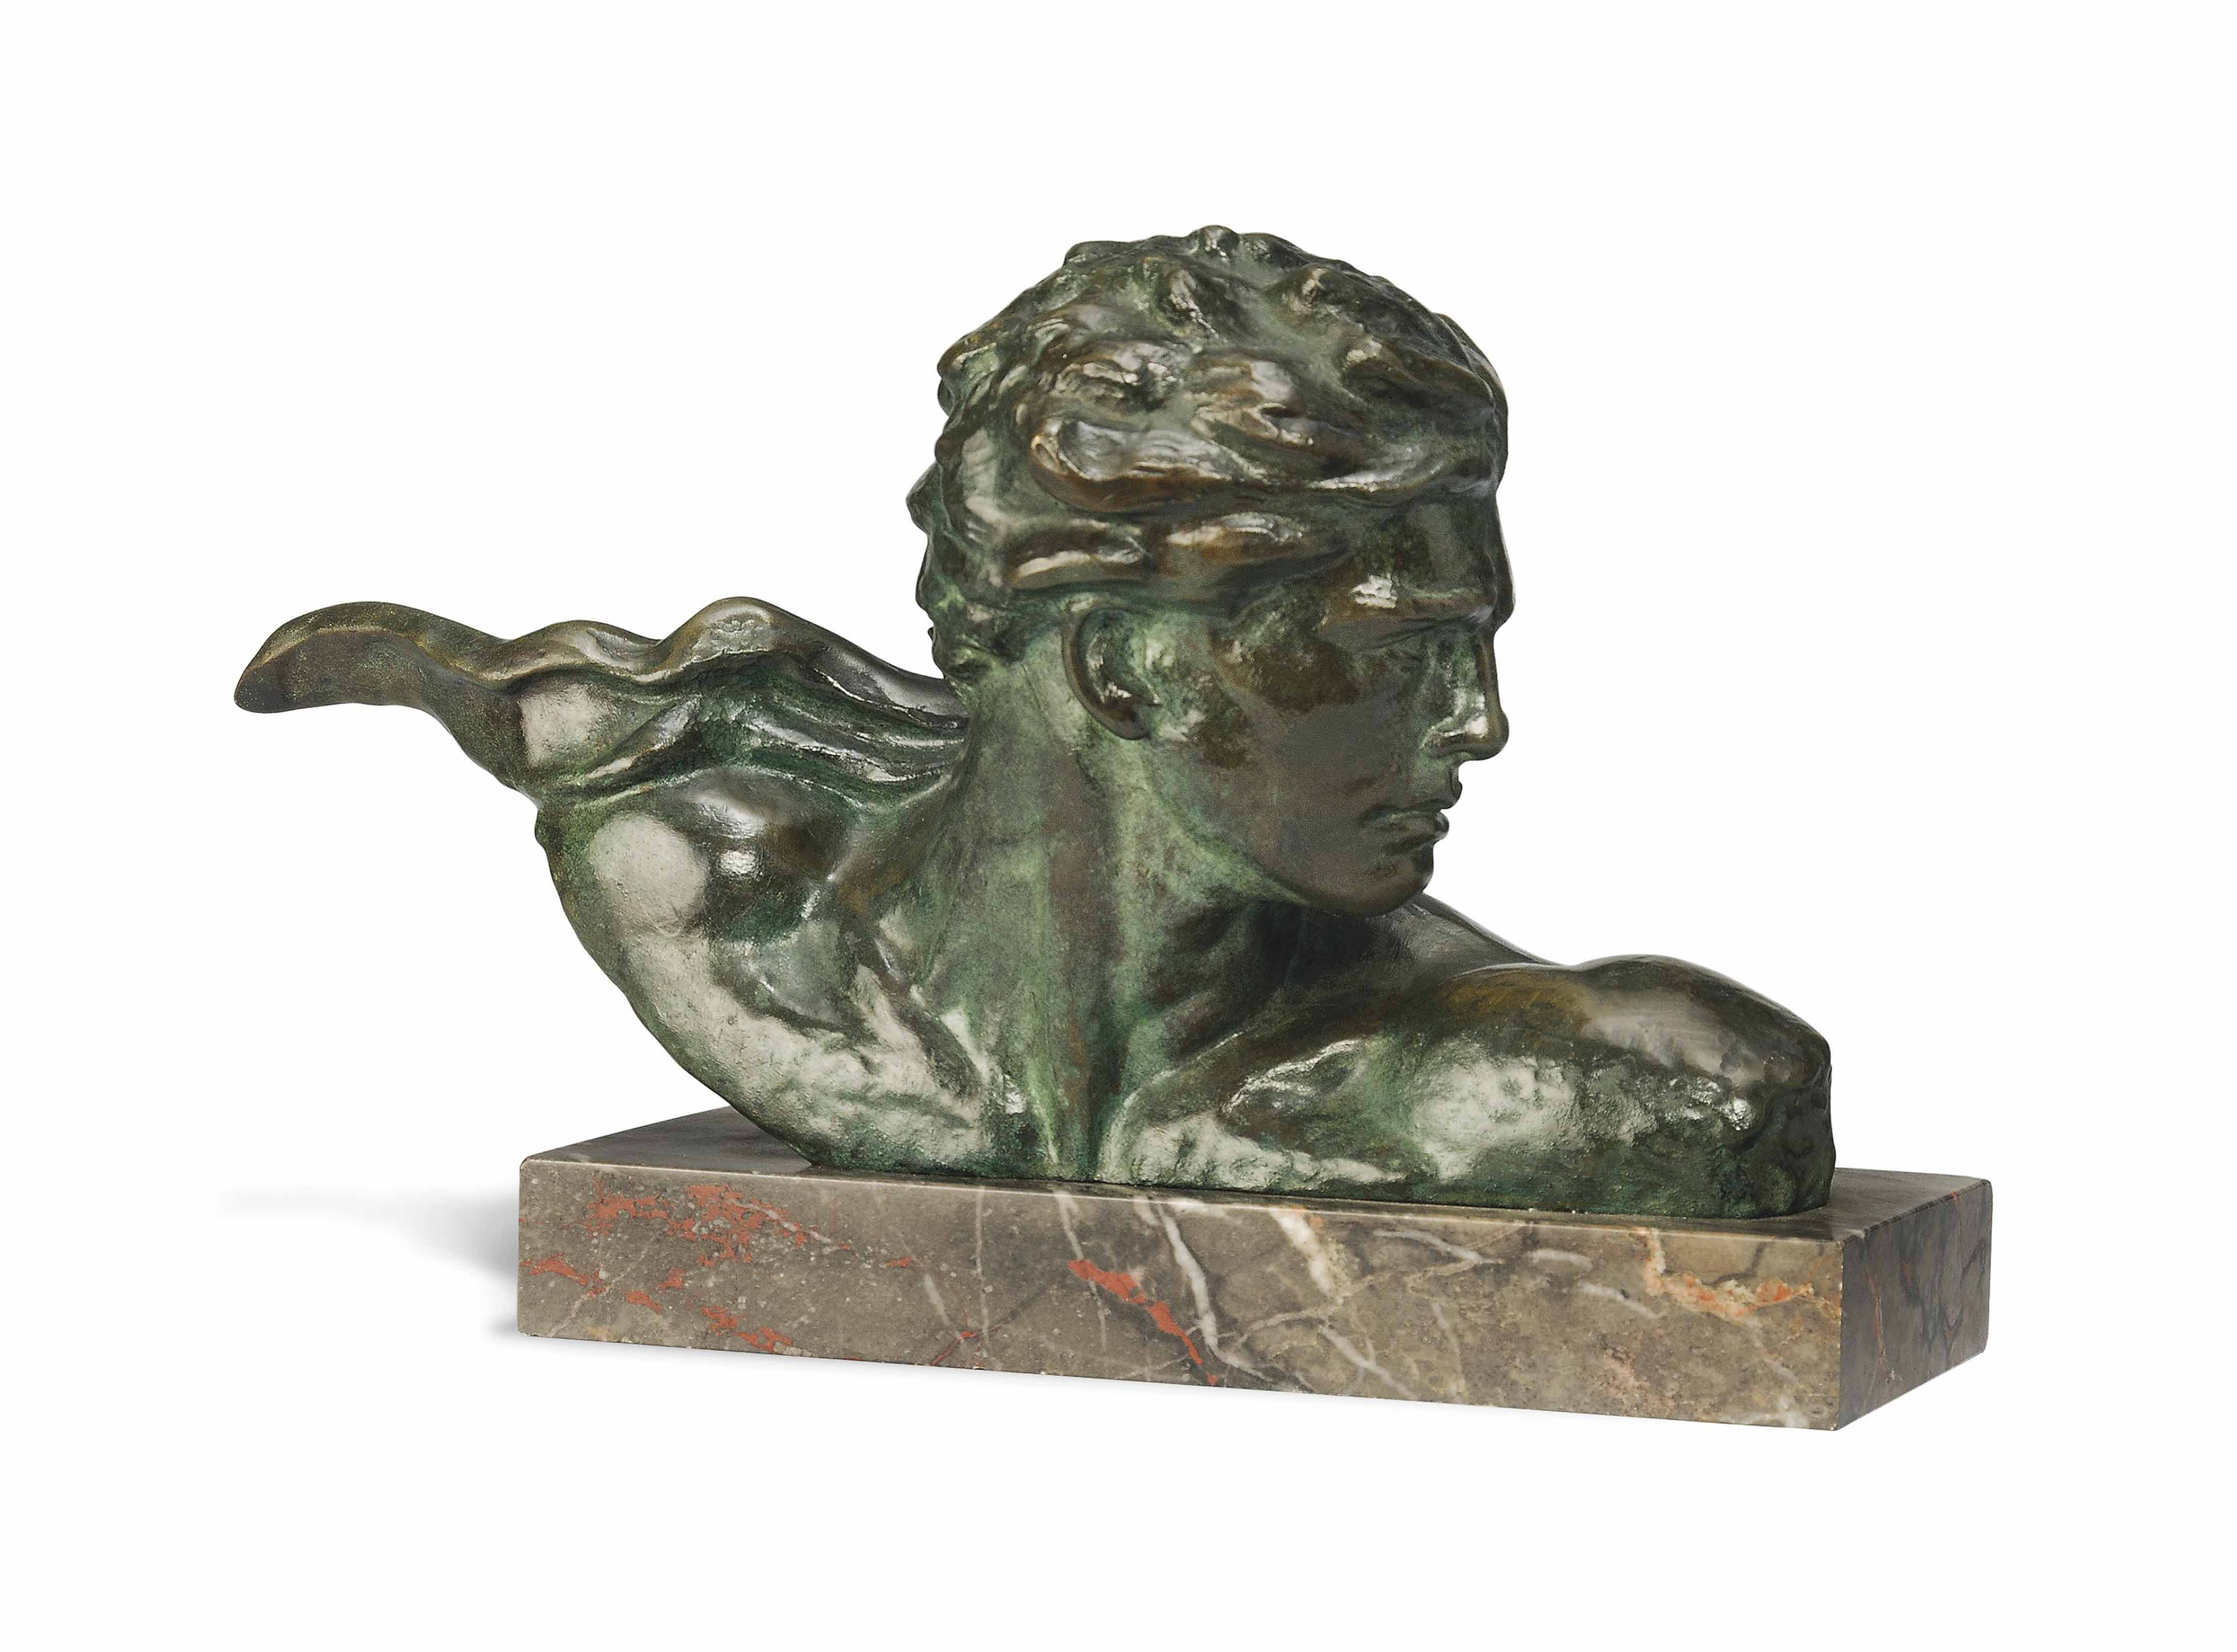 AN ALEXANDRE KELETY COLD-PAINTED AND PATINATED BRONZE BUST